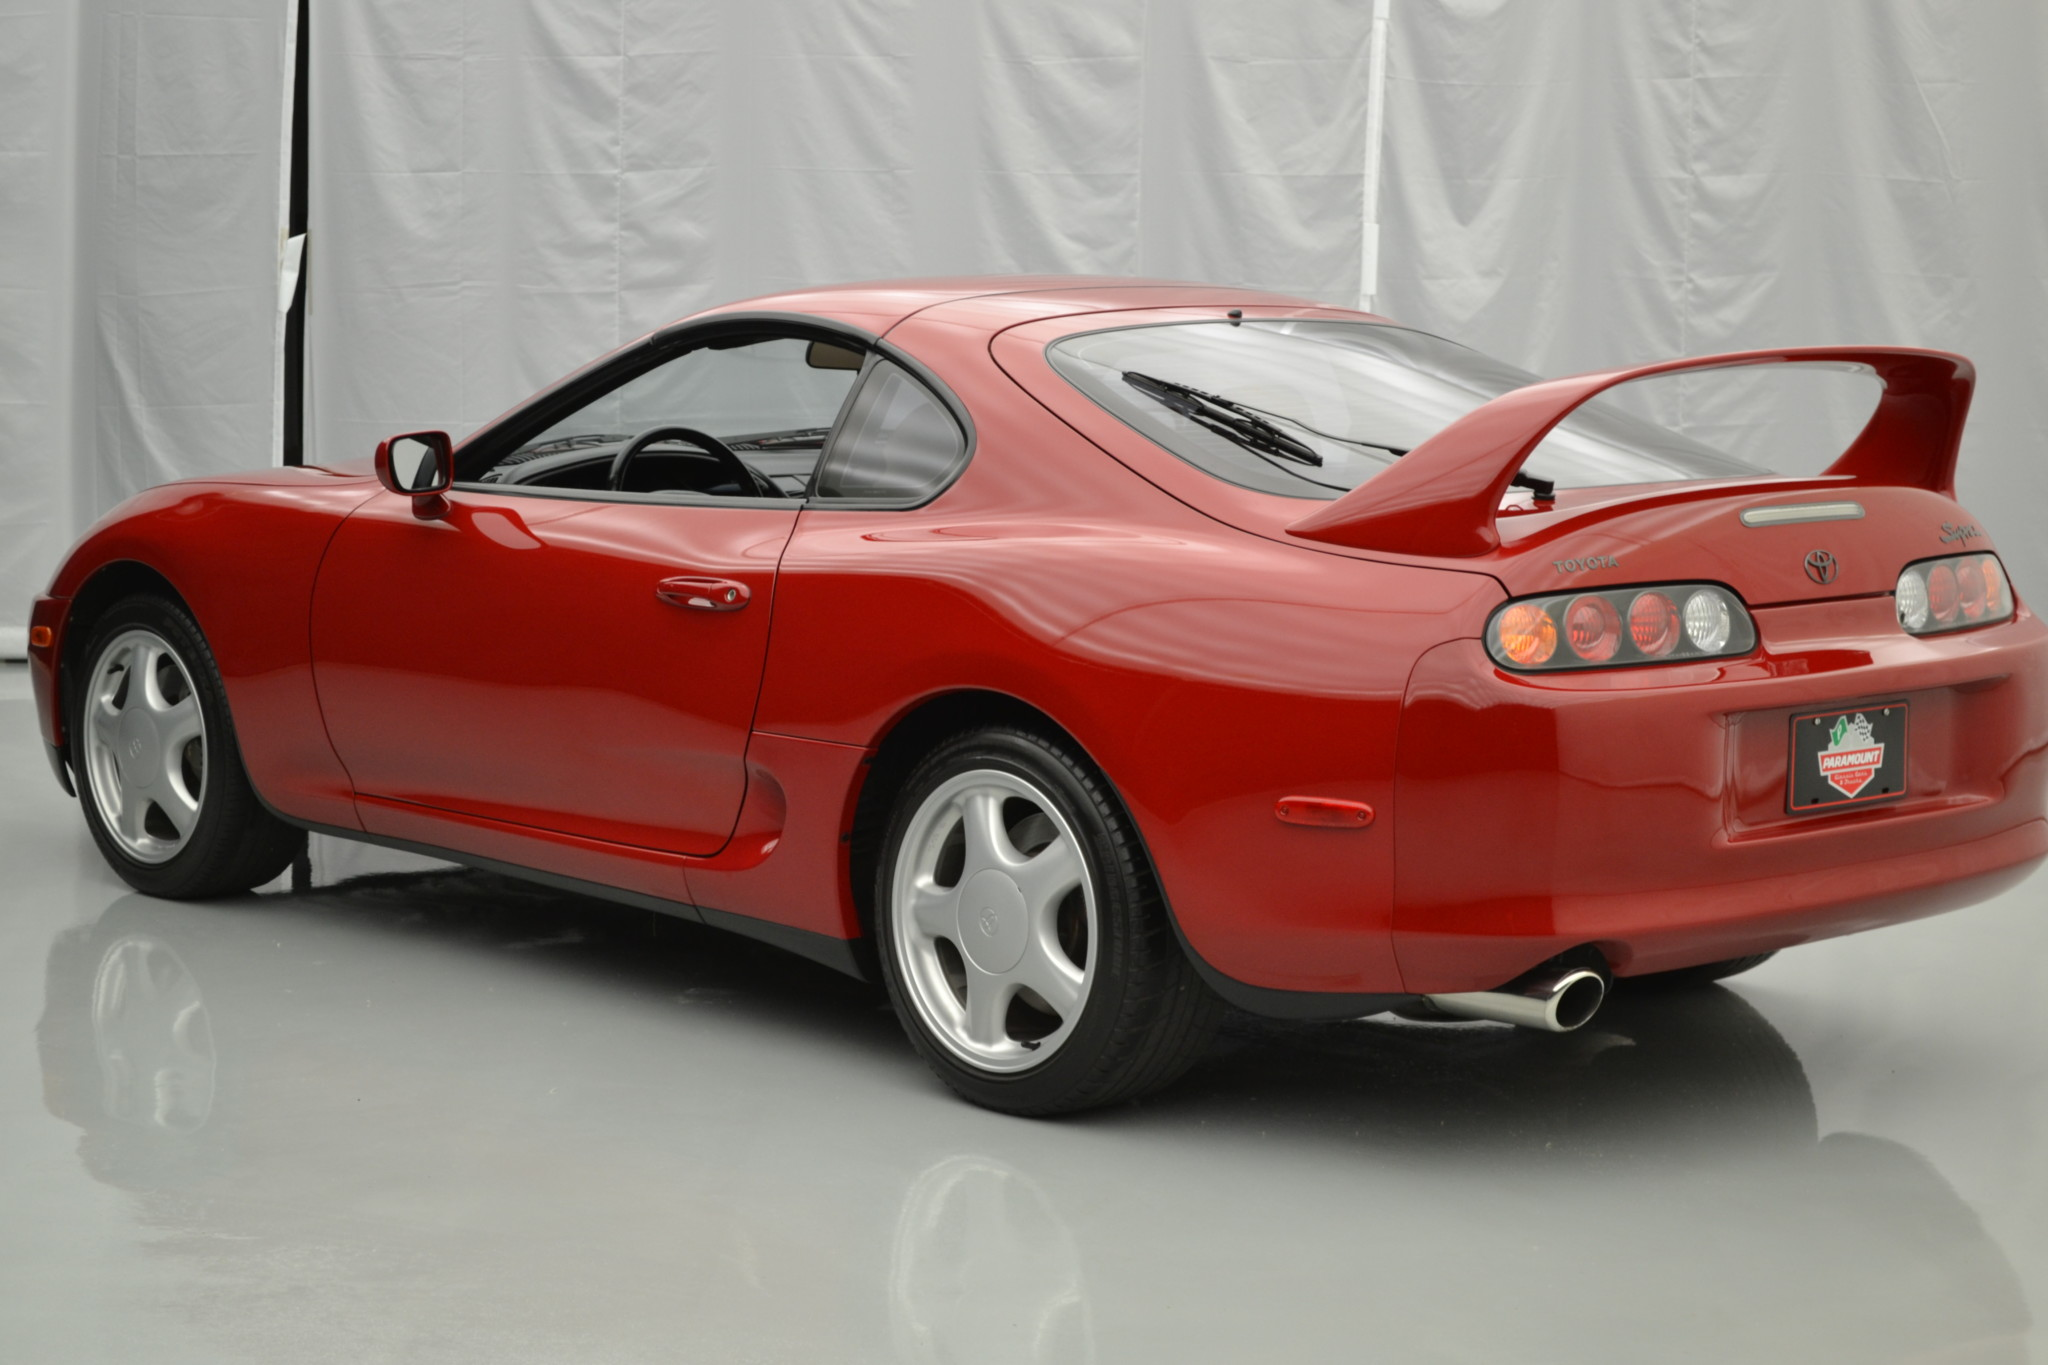 1994 Toyota Supra Twin Turbo rear 3/4